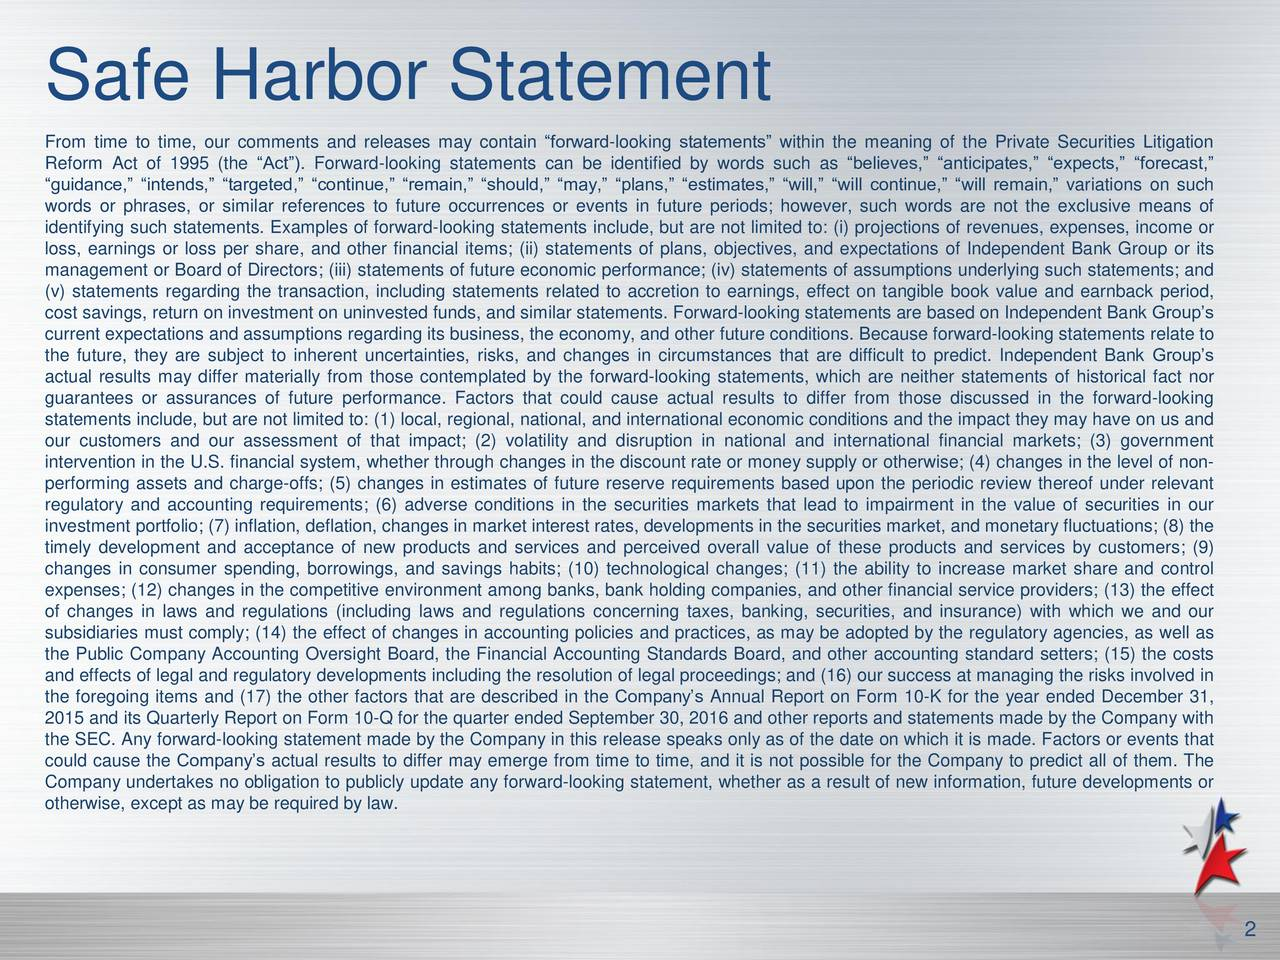 From time to time, our comments and releases may contain forward-looking statements within the meaning of the Private Securities Litigation Reform Act of 1995 (the Act). Forward-looking statements can be identified by words such as believes, anticipates, expects, forecast, guidance, intends, targeted, continue, remain, should, may, plans, estimates, will, will continue, will remain, variations on such words or phrases, or similar references to future occurrences or events in future periods; however, such words are not the exclusive means of identifying such statements. Examples of forward-looking statements include, but are not limited to: (i) projections of revenues, expenses, income or loss, earnings or loss per share, and other financial items; (ii) statements of plans, objectives, and expectations of Independent Bank Group or its management or Board of Directors; (iii) statements of future economic performance; (iv) statements of assumptions underlying such statements; and (v) statements regarding the transaction, including statements related to accretion to earnings, effect on tangible book value and earnback period, cost savings, return on investment on uninvested funds, and similar statements. Forward-looking statements are based on Independent Bank Groups current expectations and assumptions regarding its business, the economy, and other future conditions. Because forward-looking statements relate to the future, they are subject to inherent uncertainties, risks, and changes in circumstances that are difficult to predict. Independent Bank Groups actual results may differ materially from those contemplated by the forward-looking statements, which are neither statements of historical fact nor guarantees or assurances of future performance. Factors that could cause actual results to differ from those discussed in the forward-looking statements include, but are not limited to: (1) local, regional, national, and international economic conditions and the impact they may have on us and our customers and our assessment of that impact; (2) volatility and disruption in national and international financial markets; (3) government intervention in the U.S. financial system, whether through changes in the discount rate or money supply or otherwise; (4) changes in the level of non- performing assets and charge-offs; (5) changes in estimates of future reserve requirements based upon the periodic review thereof under relevant regulatory and accounting requirements; (6) adverse conditions in the securities markets that lead to impairment in the value of securities in our investment portfolio; (7) inflation, deflation, changes in market interest rates, developments in the securities market, and monetary fluctuations; (8) the timely development and acceptance of new products and services and perceived overall value of these products and services by customers; (9) changes in consumer spending, borrowings, and savings habits; (10) technological changes; (11) the ability to increase market share and control expenses; (12) changes in the competitive environment among banks, bank holding companies, and other financial service providers; (13) the effect of changes in laws and regulations (including laws and regulations concerning taxes, banking, securities, and insurance) with which we and our subsidiaries must comply; (14) the effect of changes in accounting policies and practices, as may be adopted by the regulatory agencies, as well as the Public Company Accounting Oversight Board, the Financial Accounting Standards Board, and other accounting standard setters; (15) the costs and effects of legal and regulatory developments including the resolution of legal proceedings; and (16) our success at managing the risks involved in the foregoing items and (17) the other factors that are described in the Companys Annual Report on Form 10-K for the year ended December 31, 2015 and its Quarterly Report on Form 10-Q for the quarter ended September 30, 2016 and other reports and statements made by the Company with the SEC. Any forward-looking statement made by the Company in this release speaks only as of the date on which it is made. Factors or events that could cause the Companys actual results to differ may emerge from time to time, and it is not possible for the Company to predict all of them. The Company undertakes no obligation to publicly update any forward-looking statement, whether as a result of new information, future developments or otherwise, except as may be required by law. 2